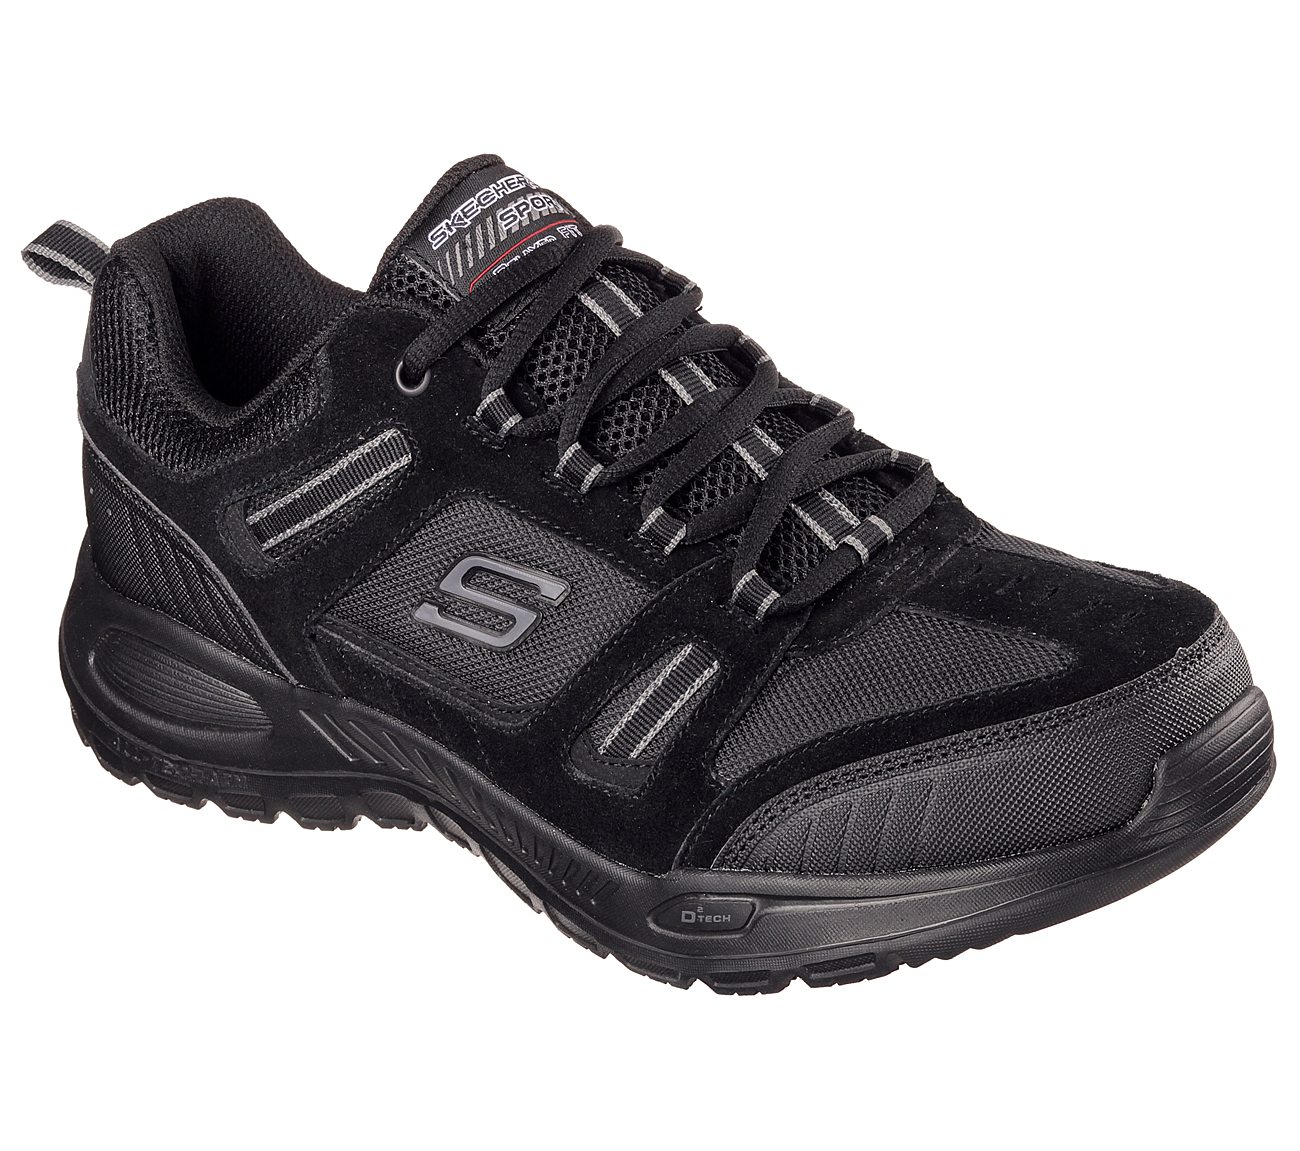 Skechers Double Down Relaxed Fit Memory Foam Sneaker Taupe/Black I53t2553